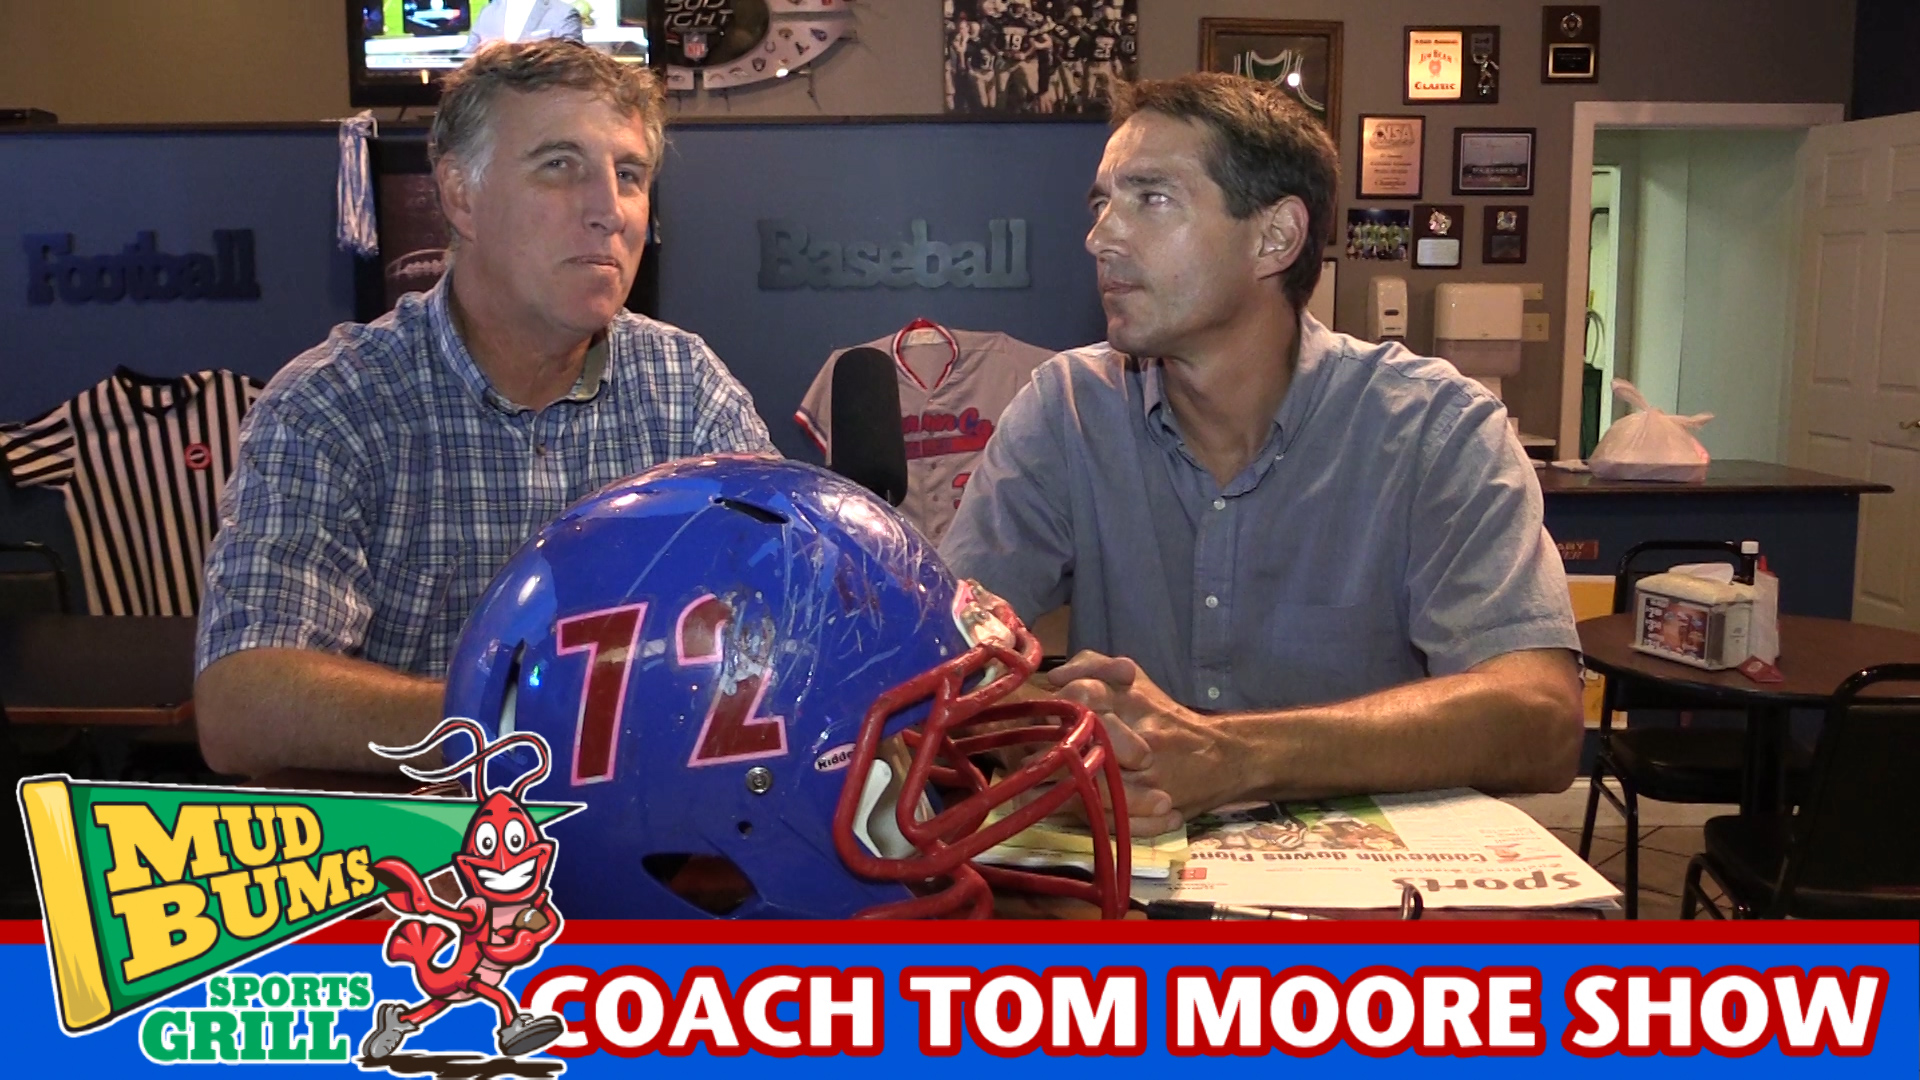 Coach Tom Moore discusses the Cookeville game